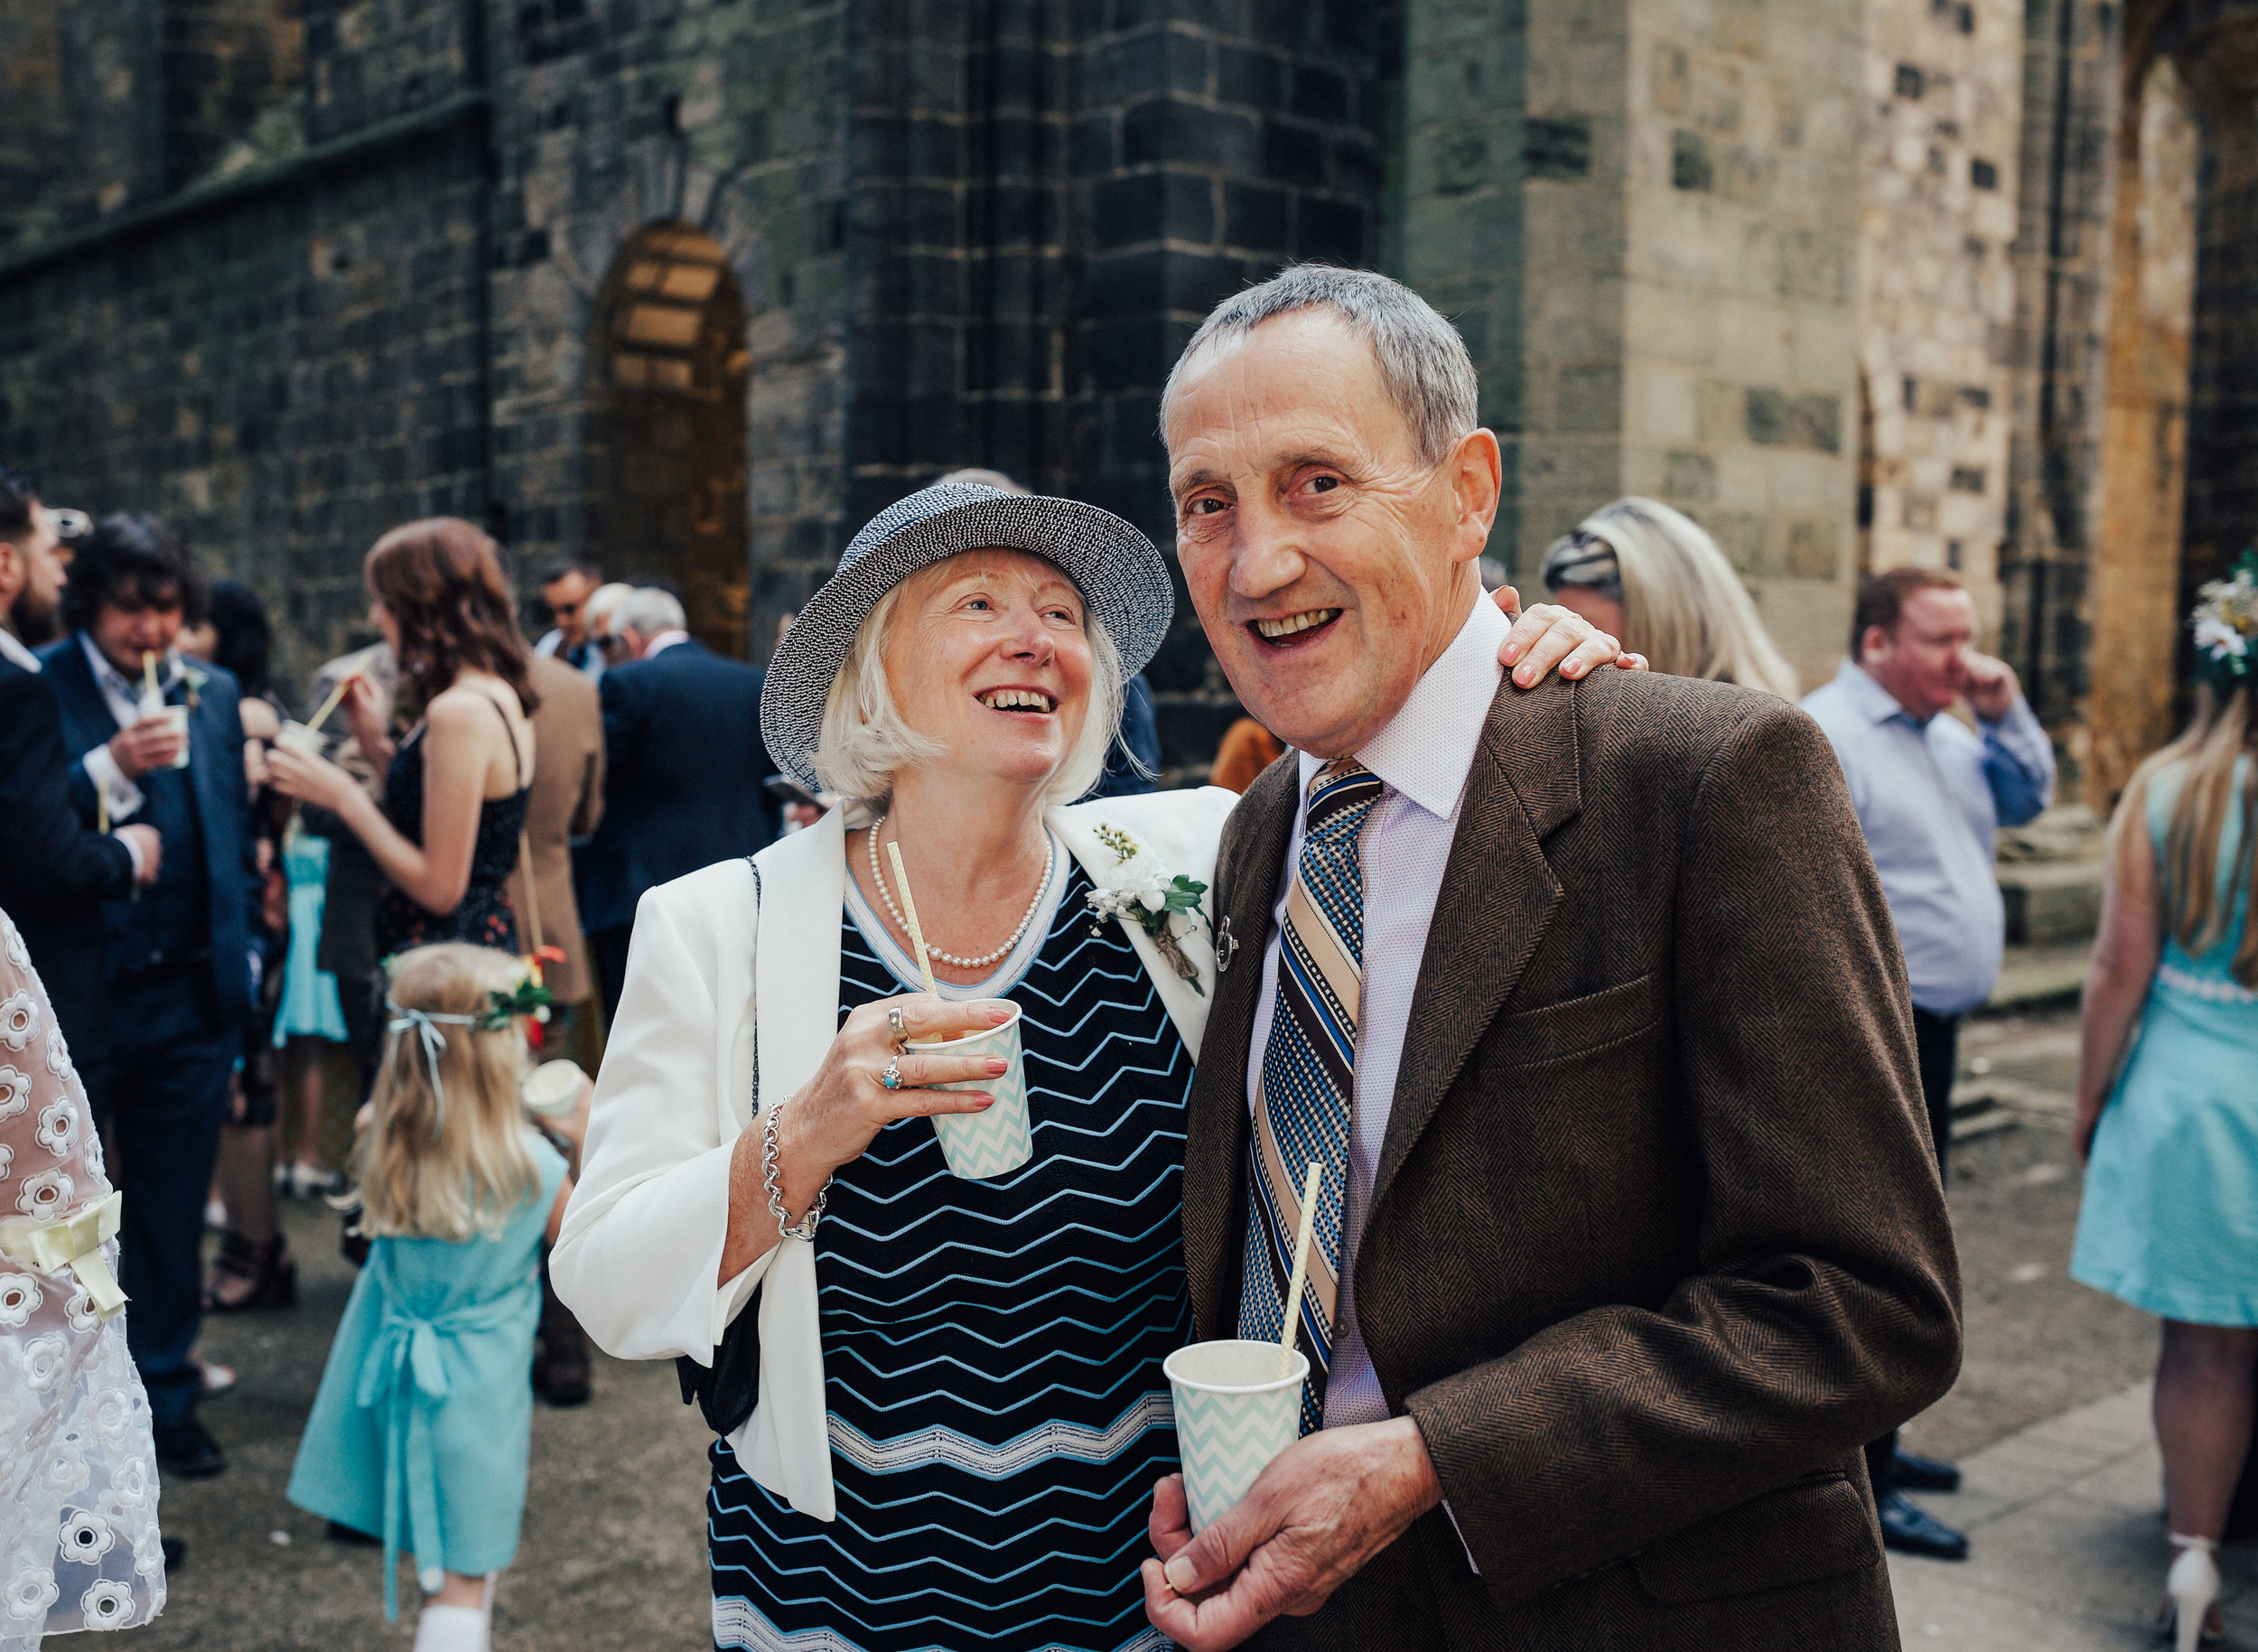 ALTERNATIVE_WEDDING_PHOTOGRAPHY_LEEDS_UK_PJ_PHILLIPS_PHOTOGRAPHY_88.jpg